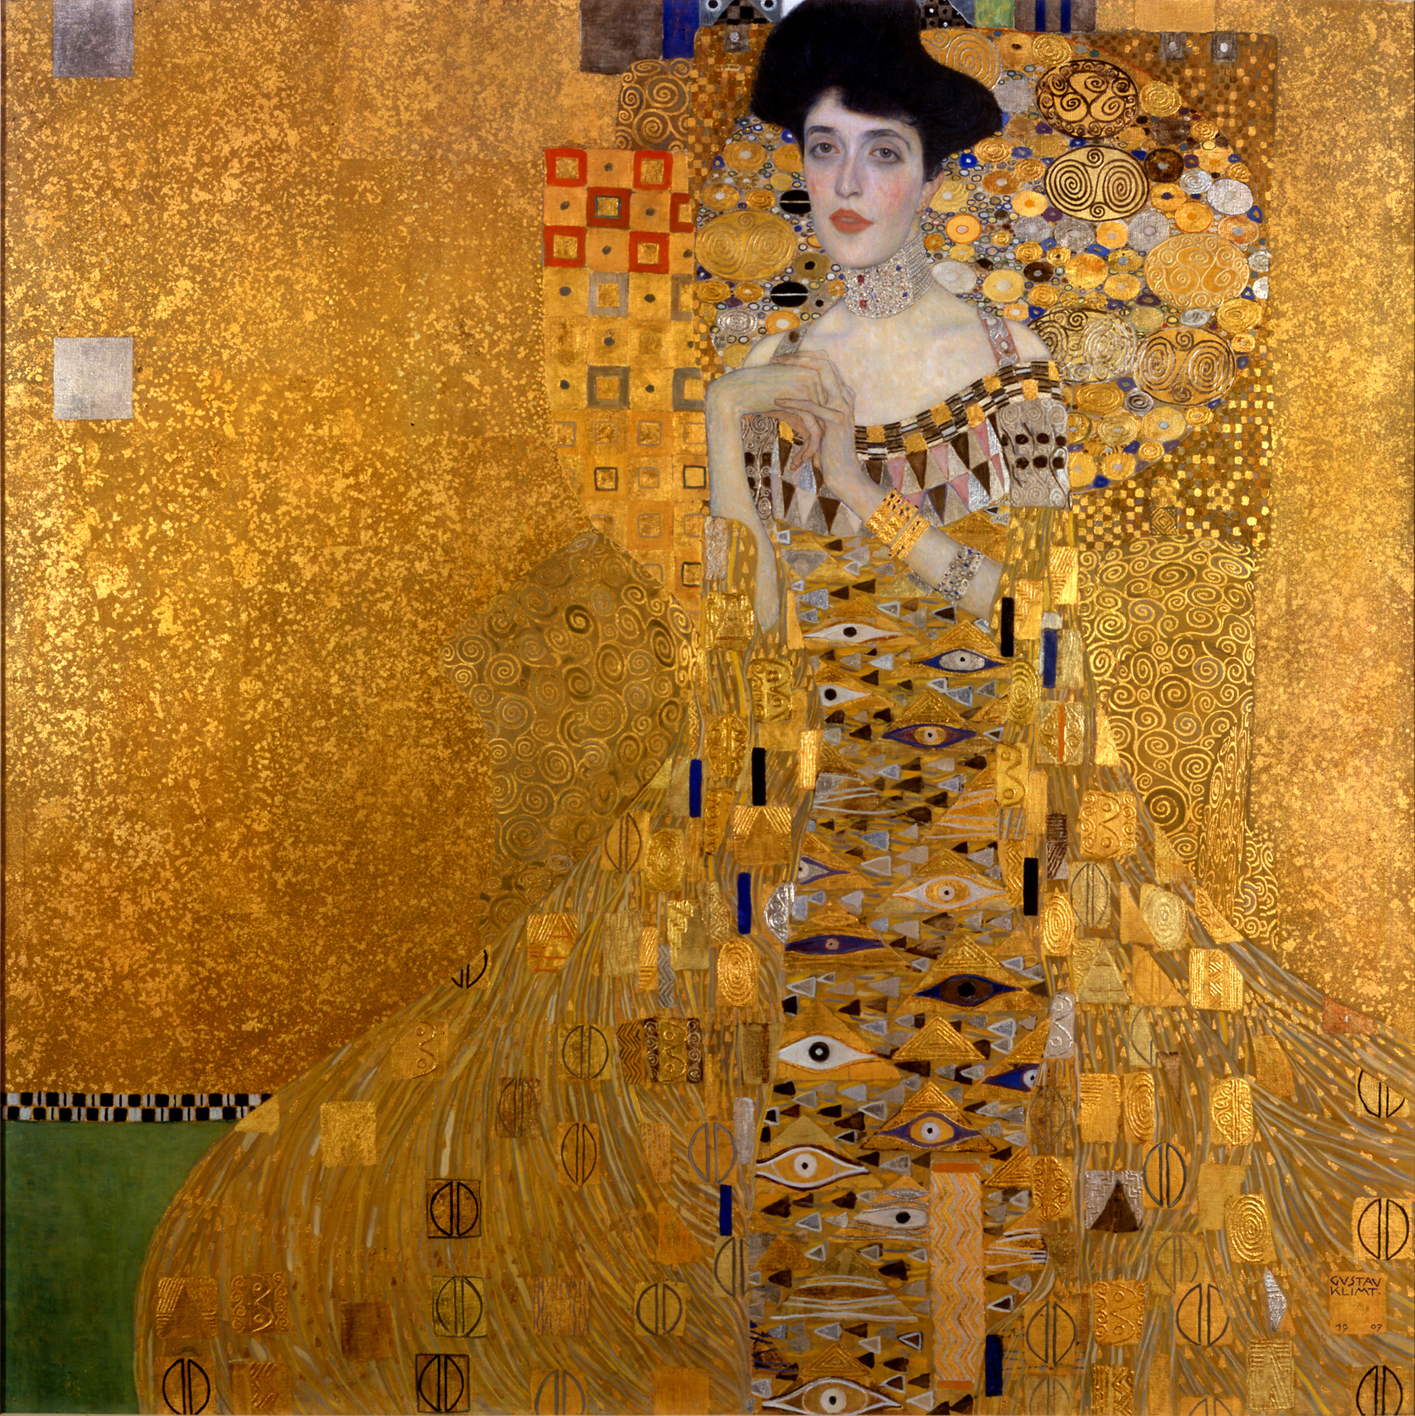 The Extraordinary Tale of Gustav Klimts Masterpiece The Lady in Gold Portrait of Adele Bloch-Bauer